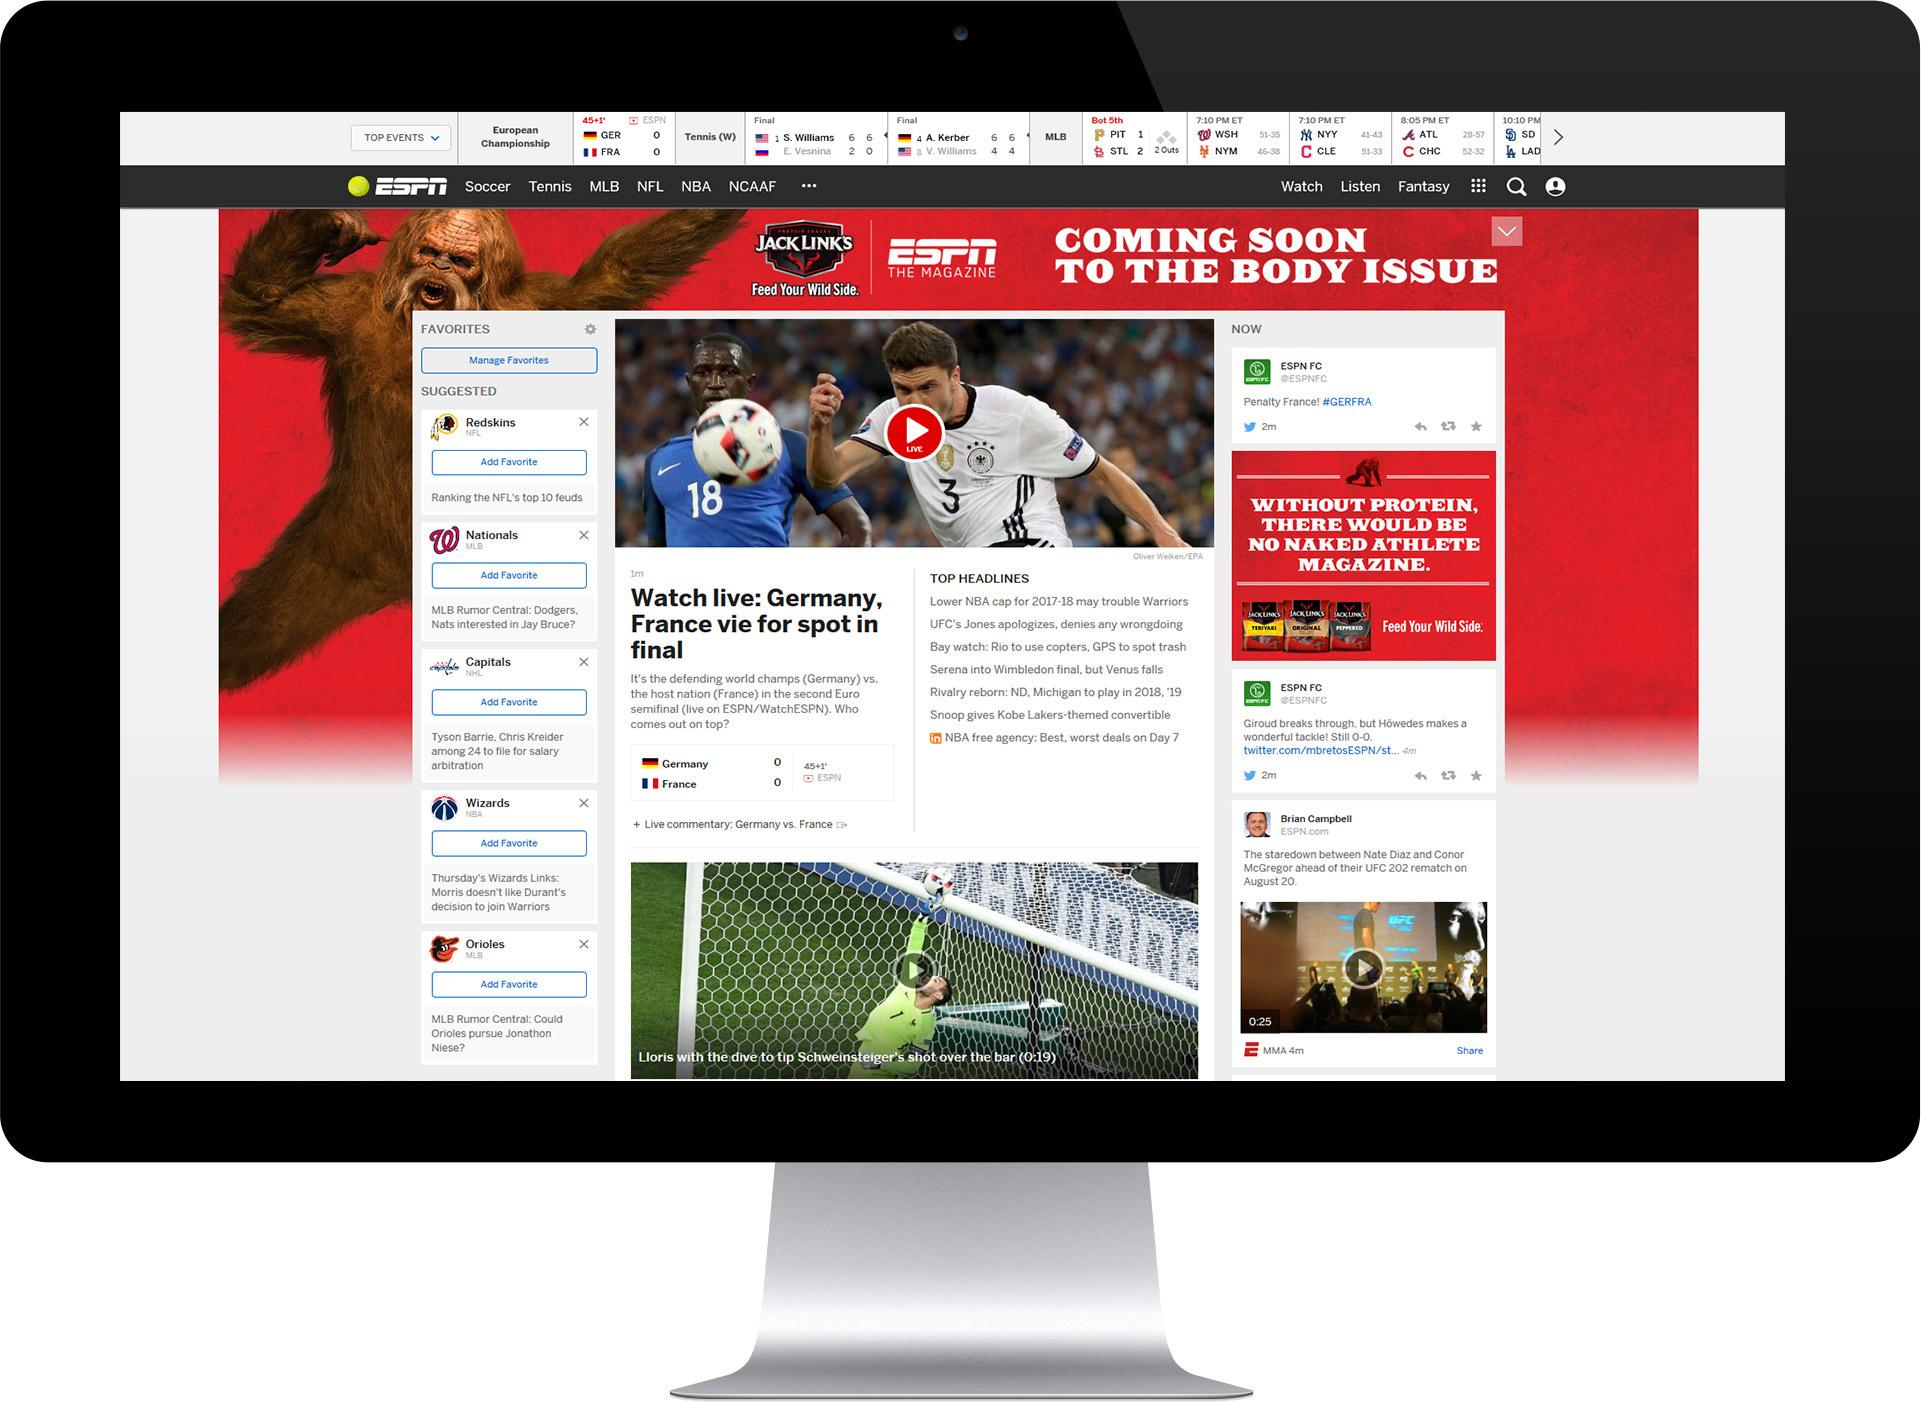 Image Media for Jack Links Sasquatch & ESPN: The Body Issue